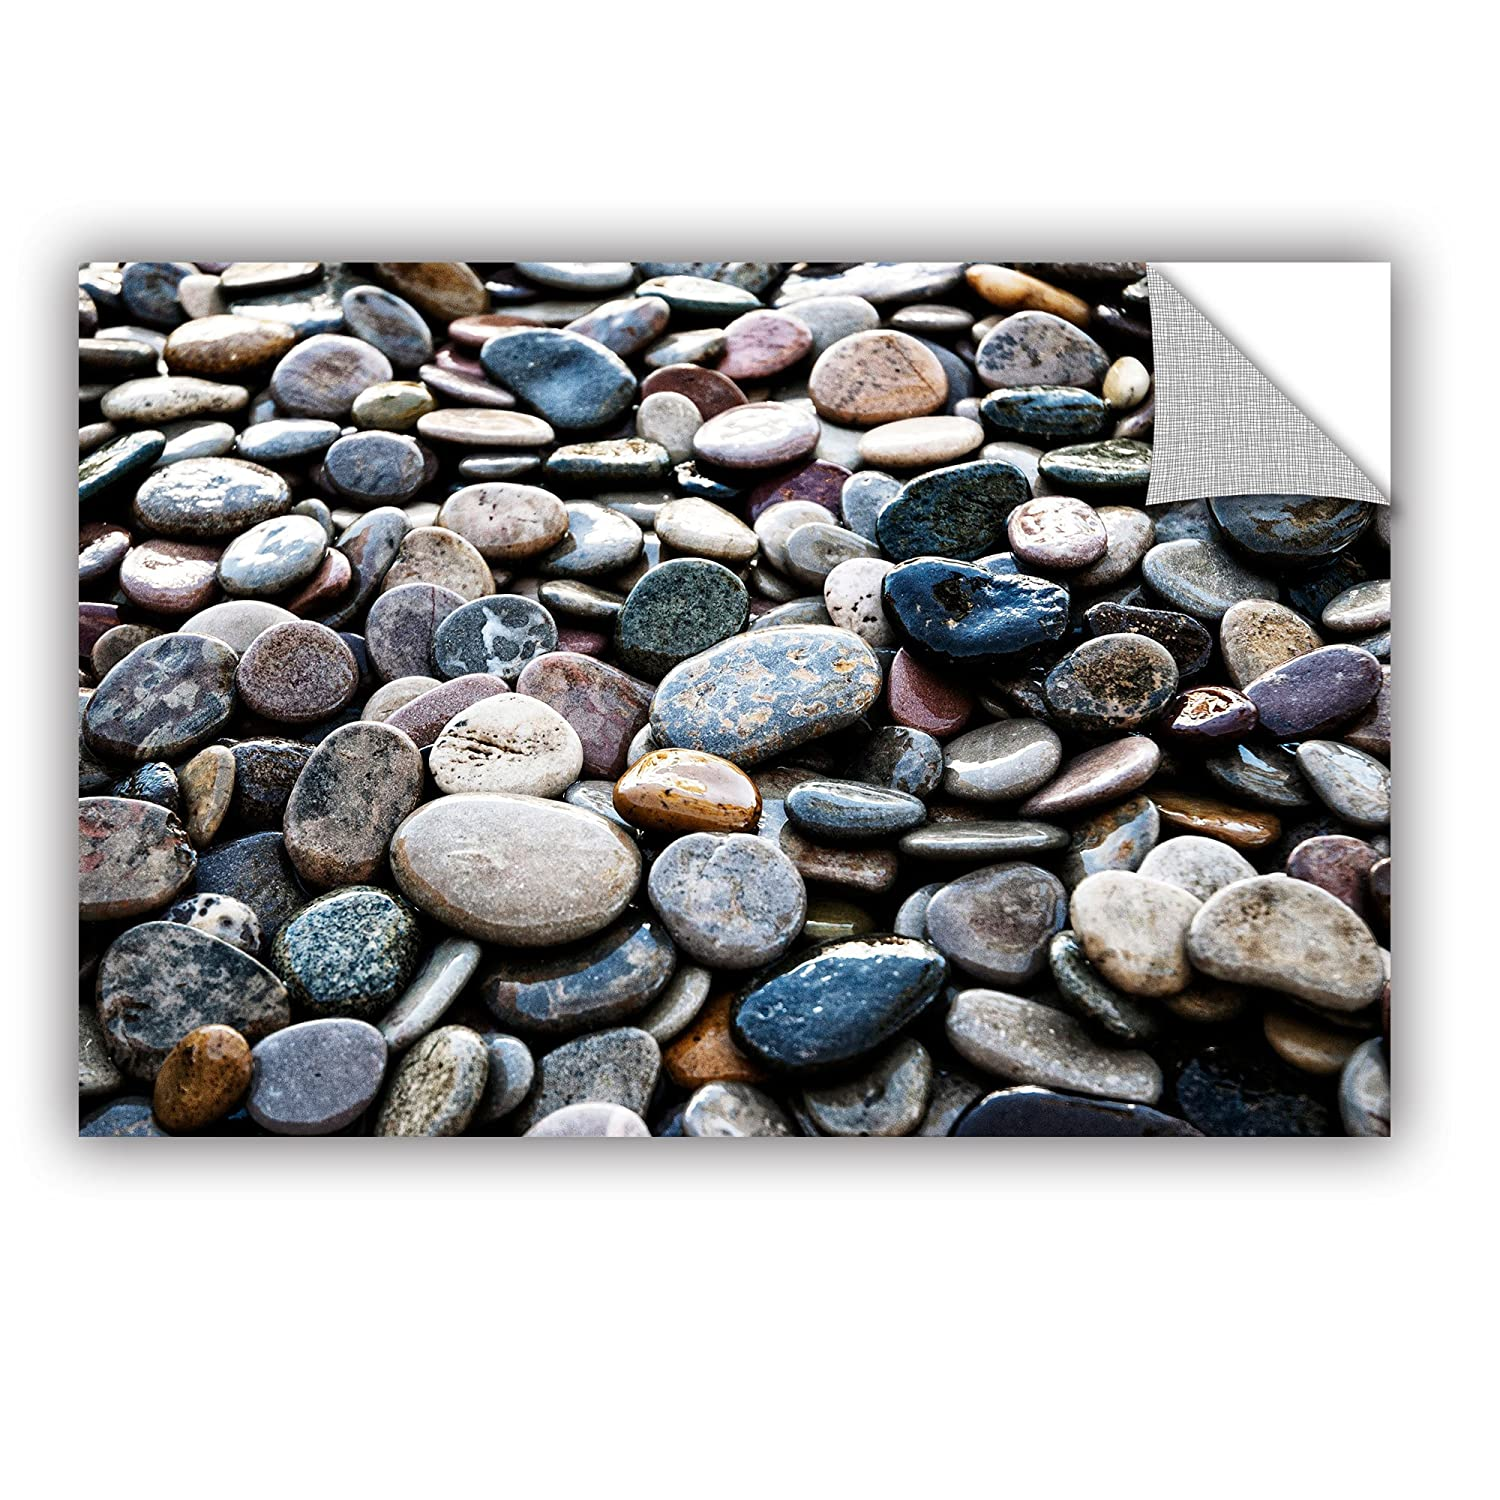 16 x 24 ArtWall Elana Rays River Stones Appealz Removable Graphic Wall Art Multicolor